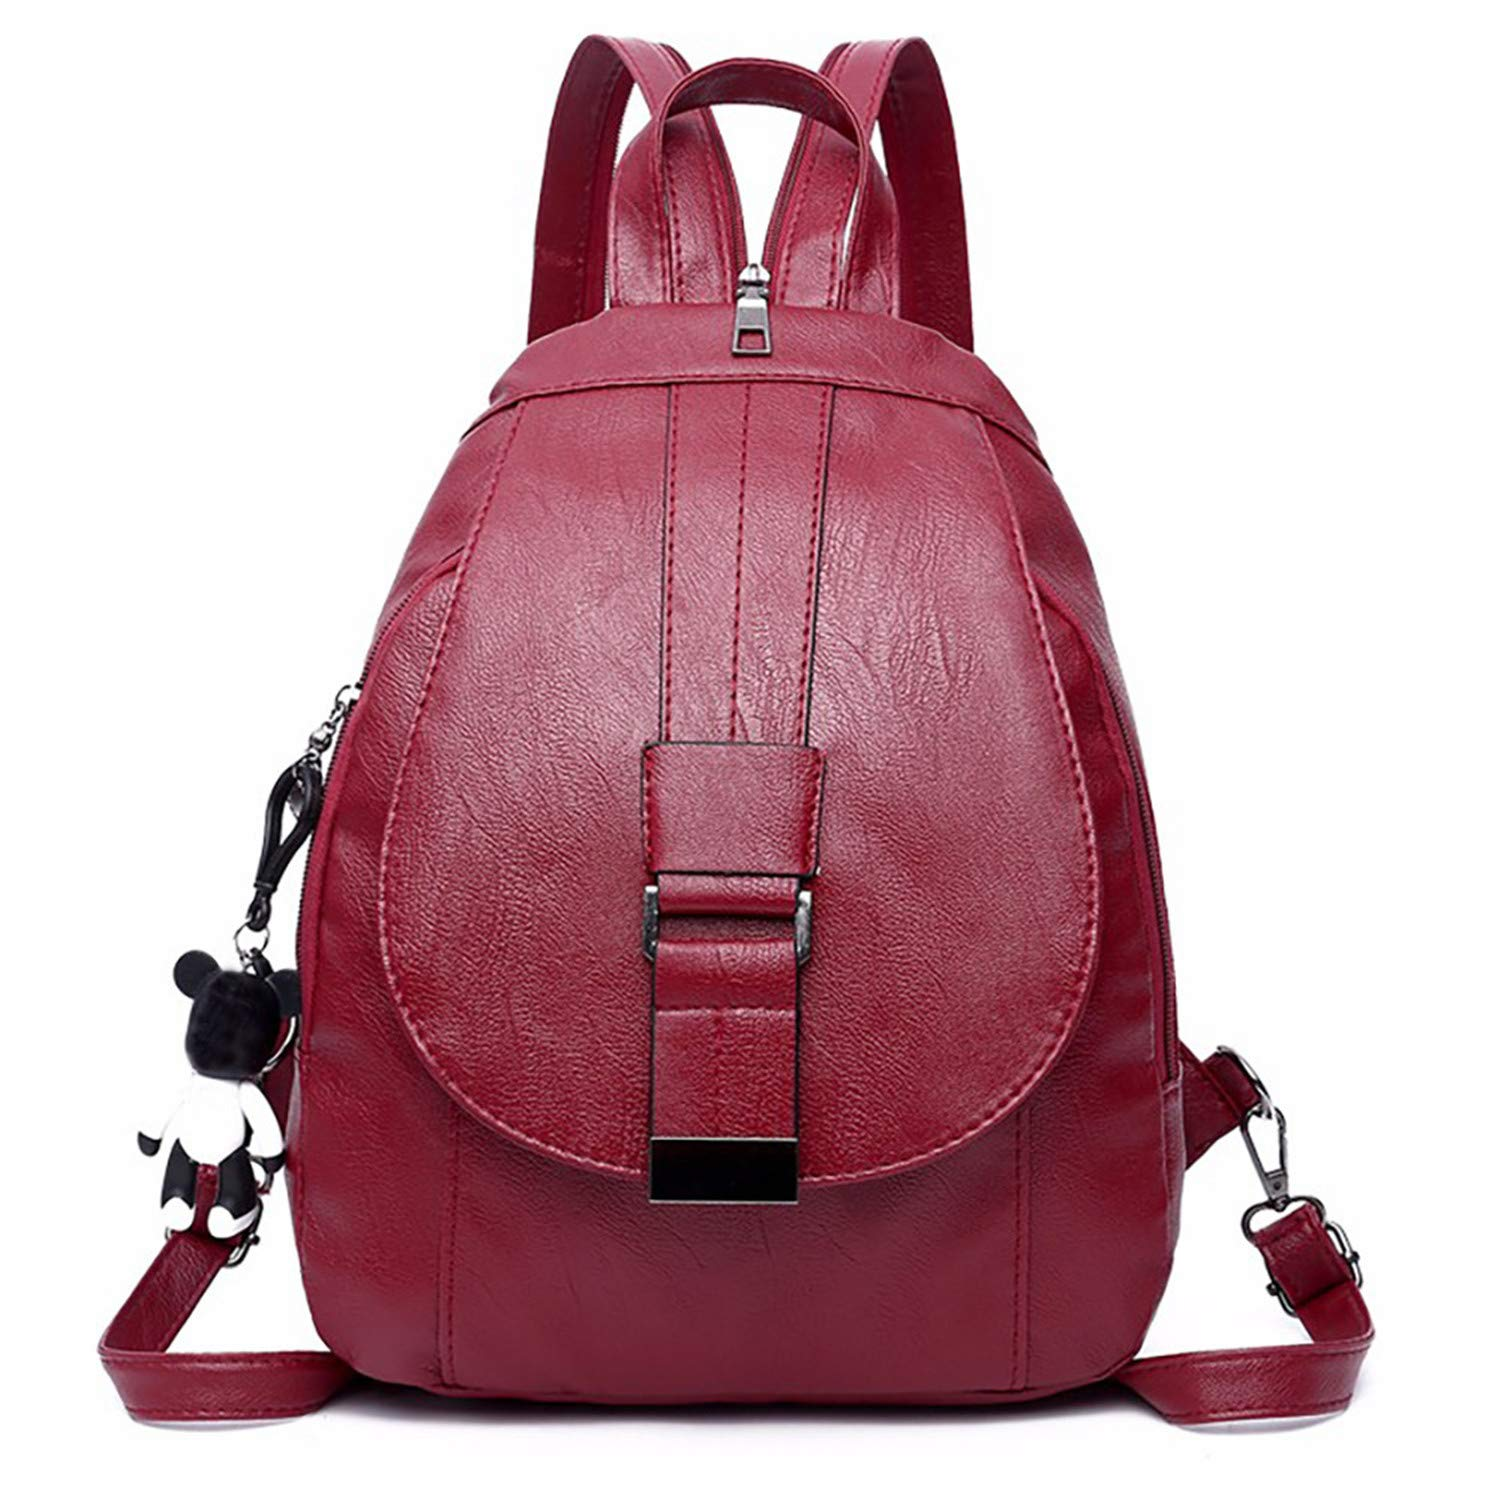 Simple Style PU Leather Backpack Bag Multi-purpose backpack female for school in style backpack female mochilas mujer at Amazon Womens Clothing store: